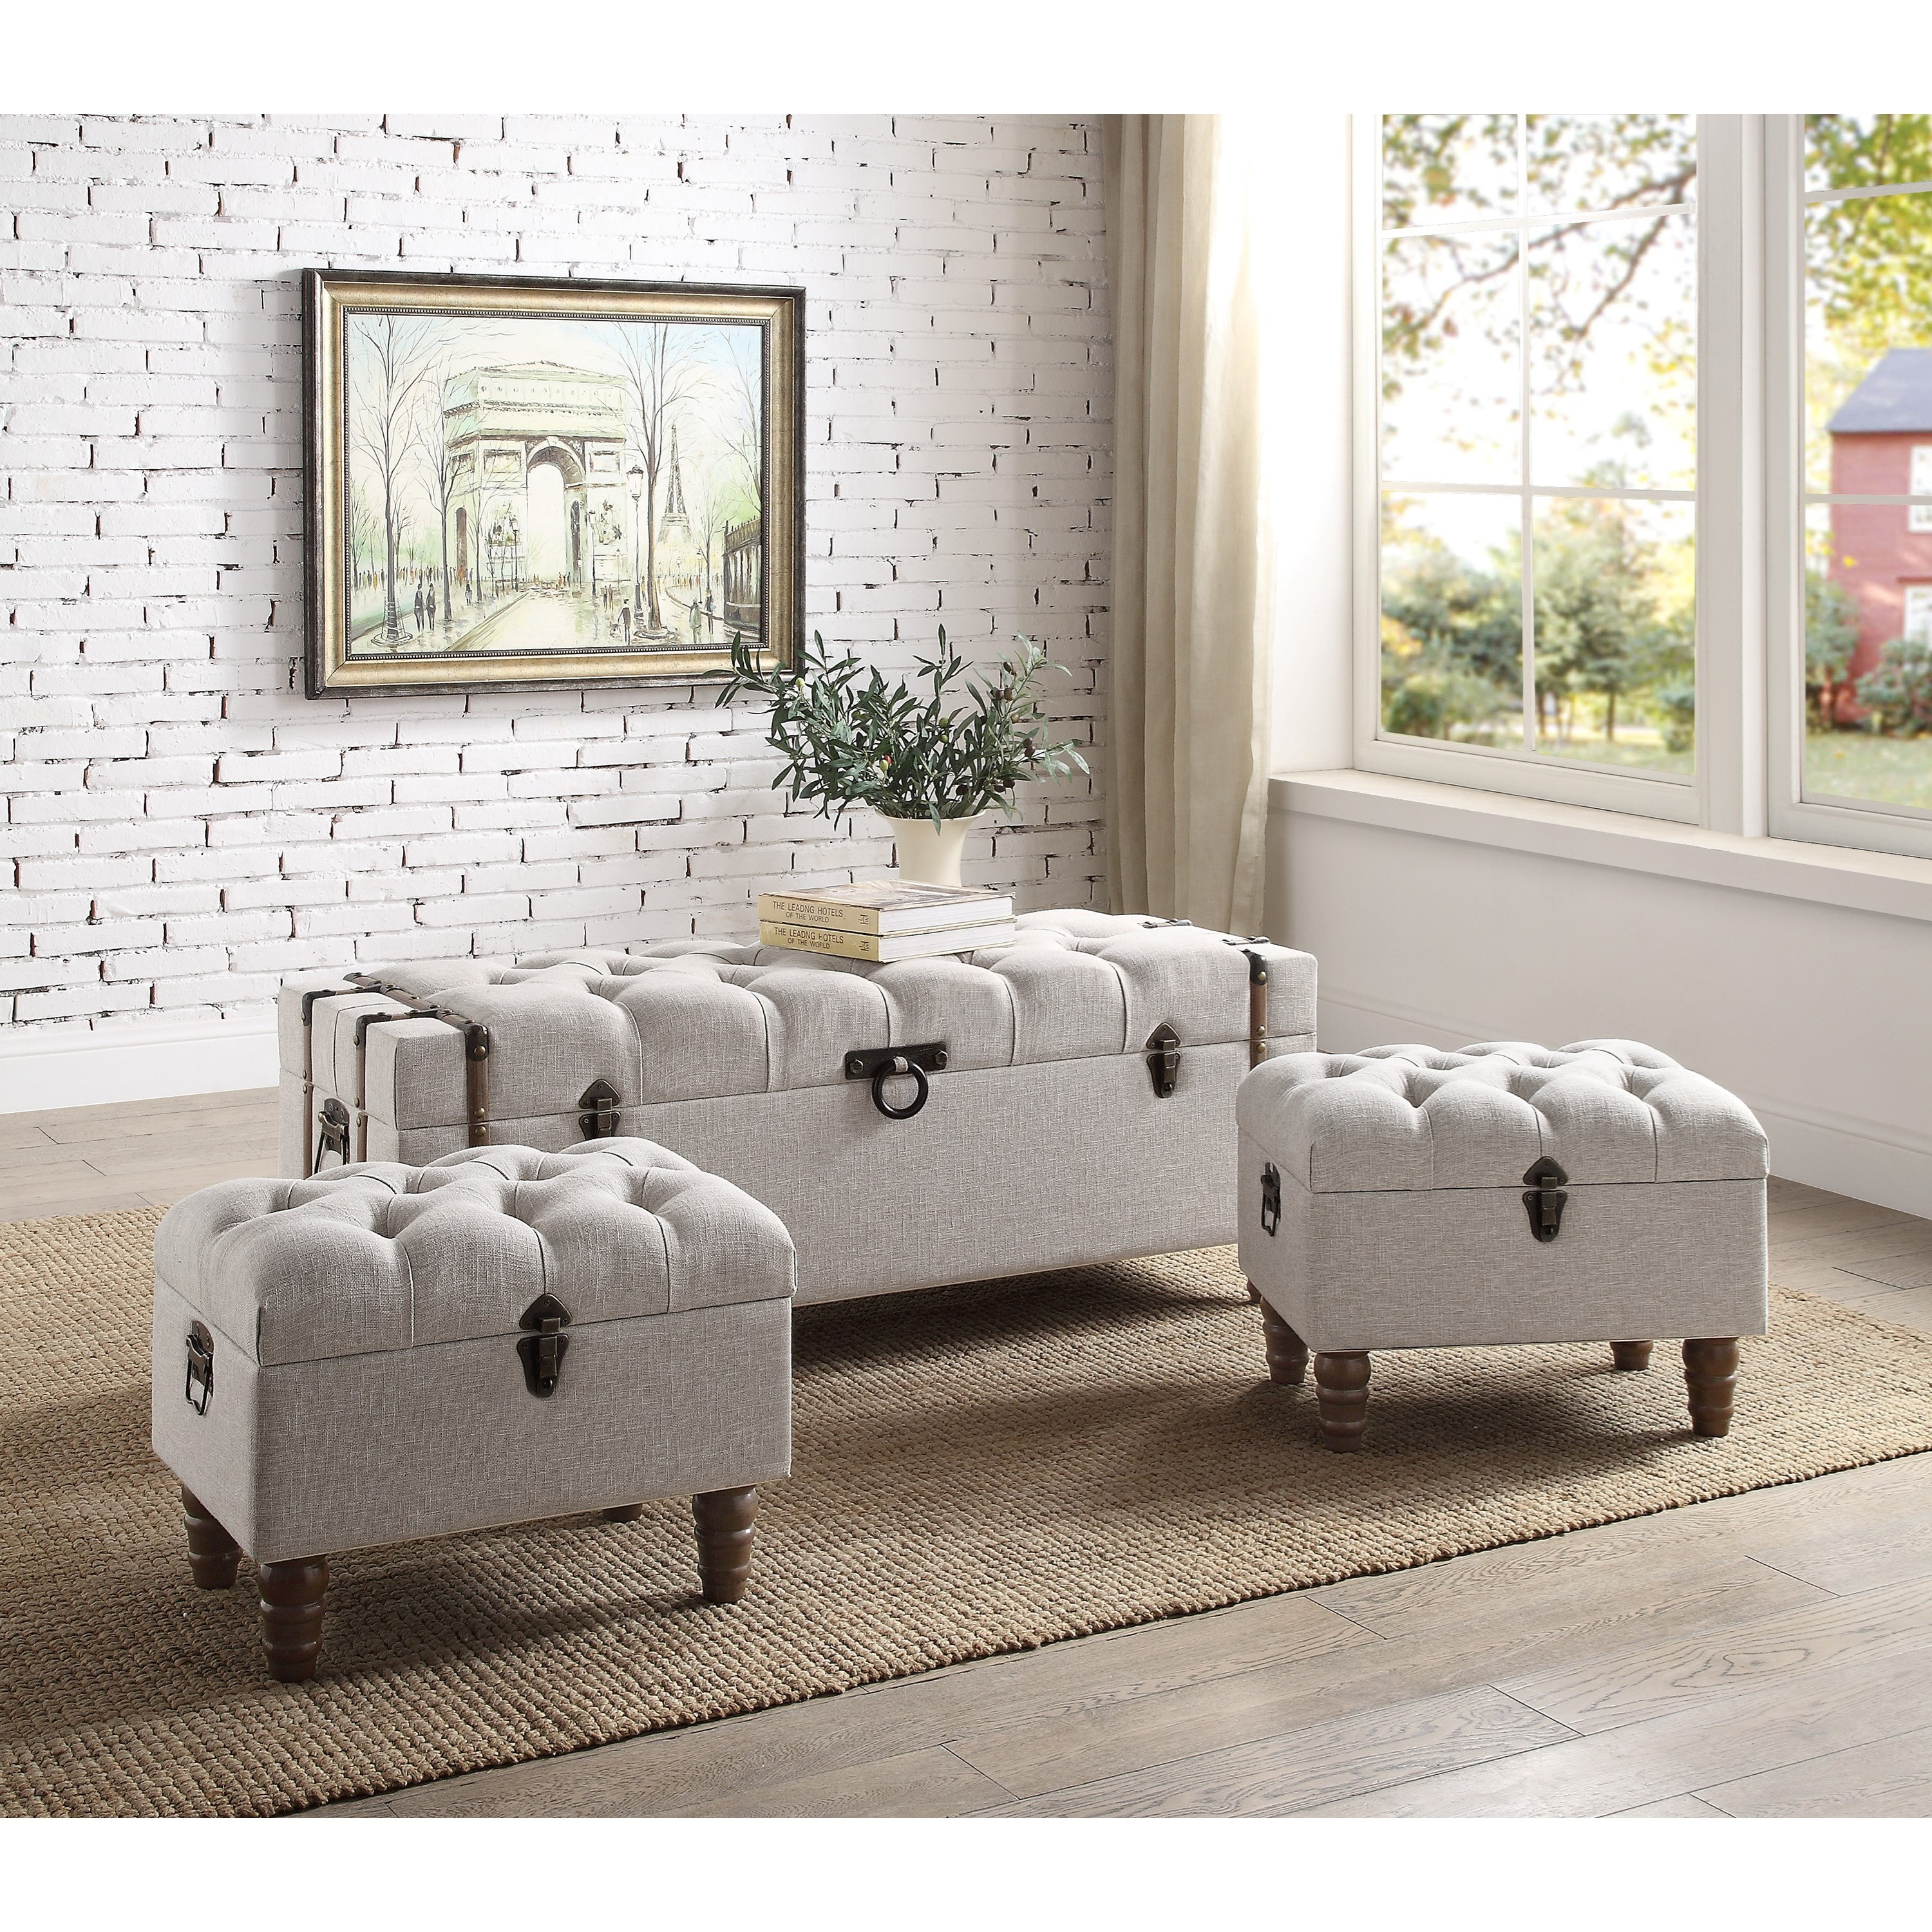 Sachi 3Pc Storage Ottoman Set by Crown Mark at Northeast Factory Direct